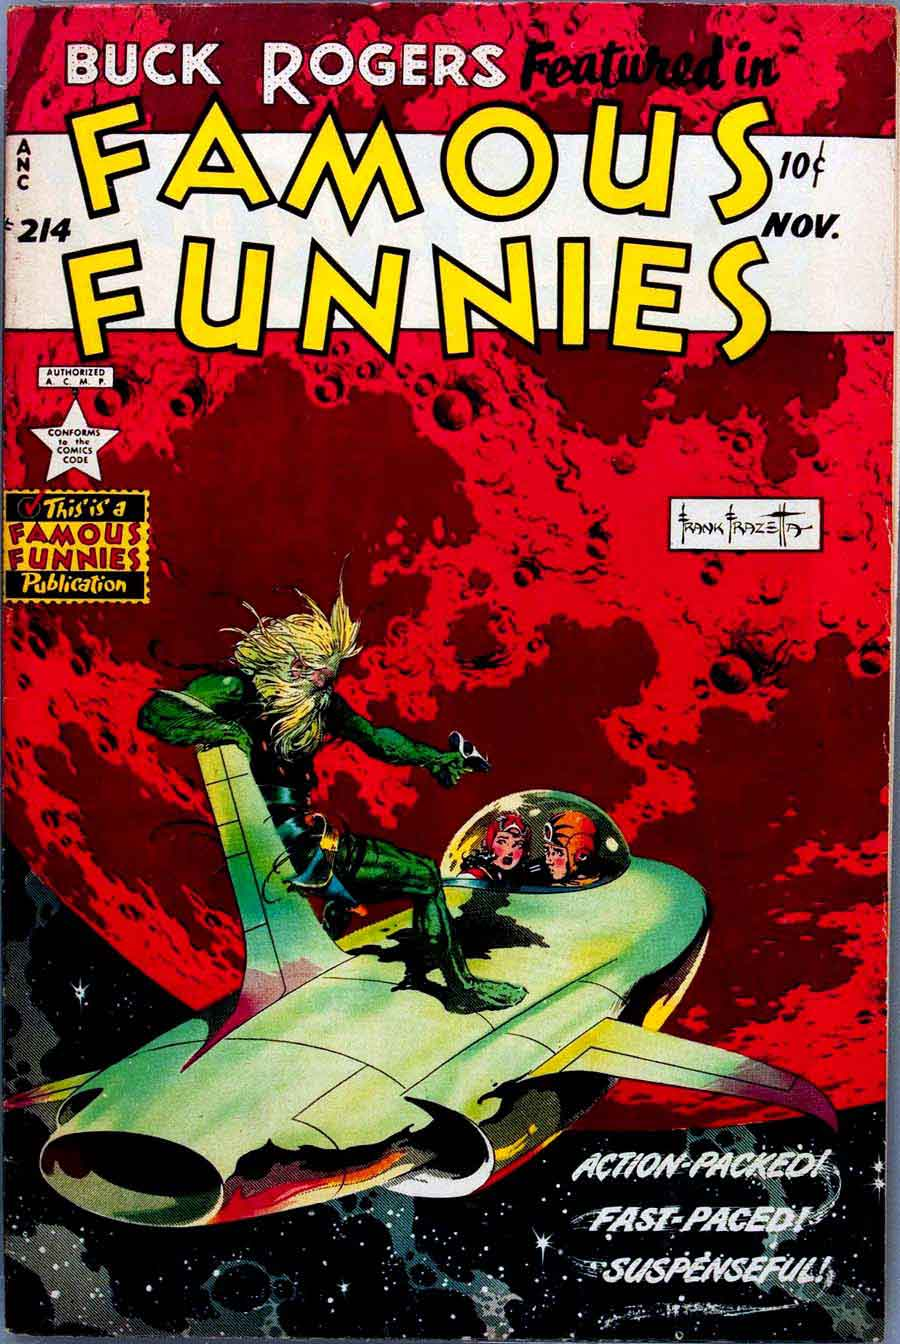 Frank Frazetta Buck Rogers 1950s golden age science fiction comic book cover / Famous Funnies #214